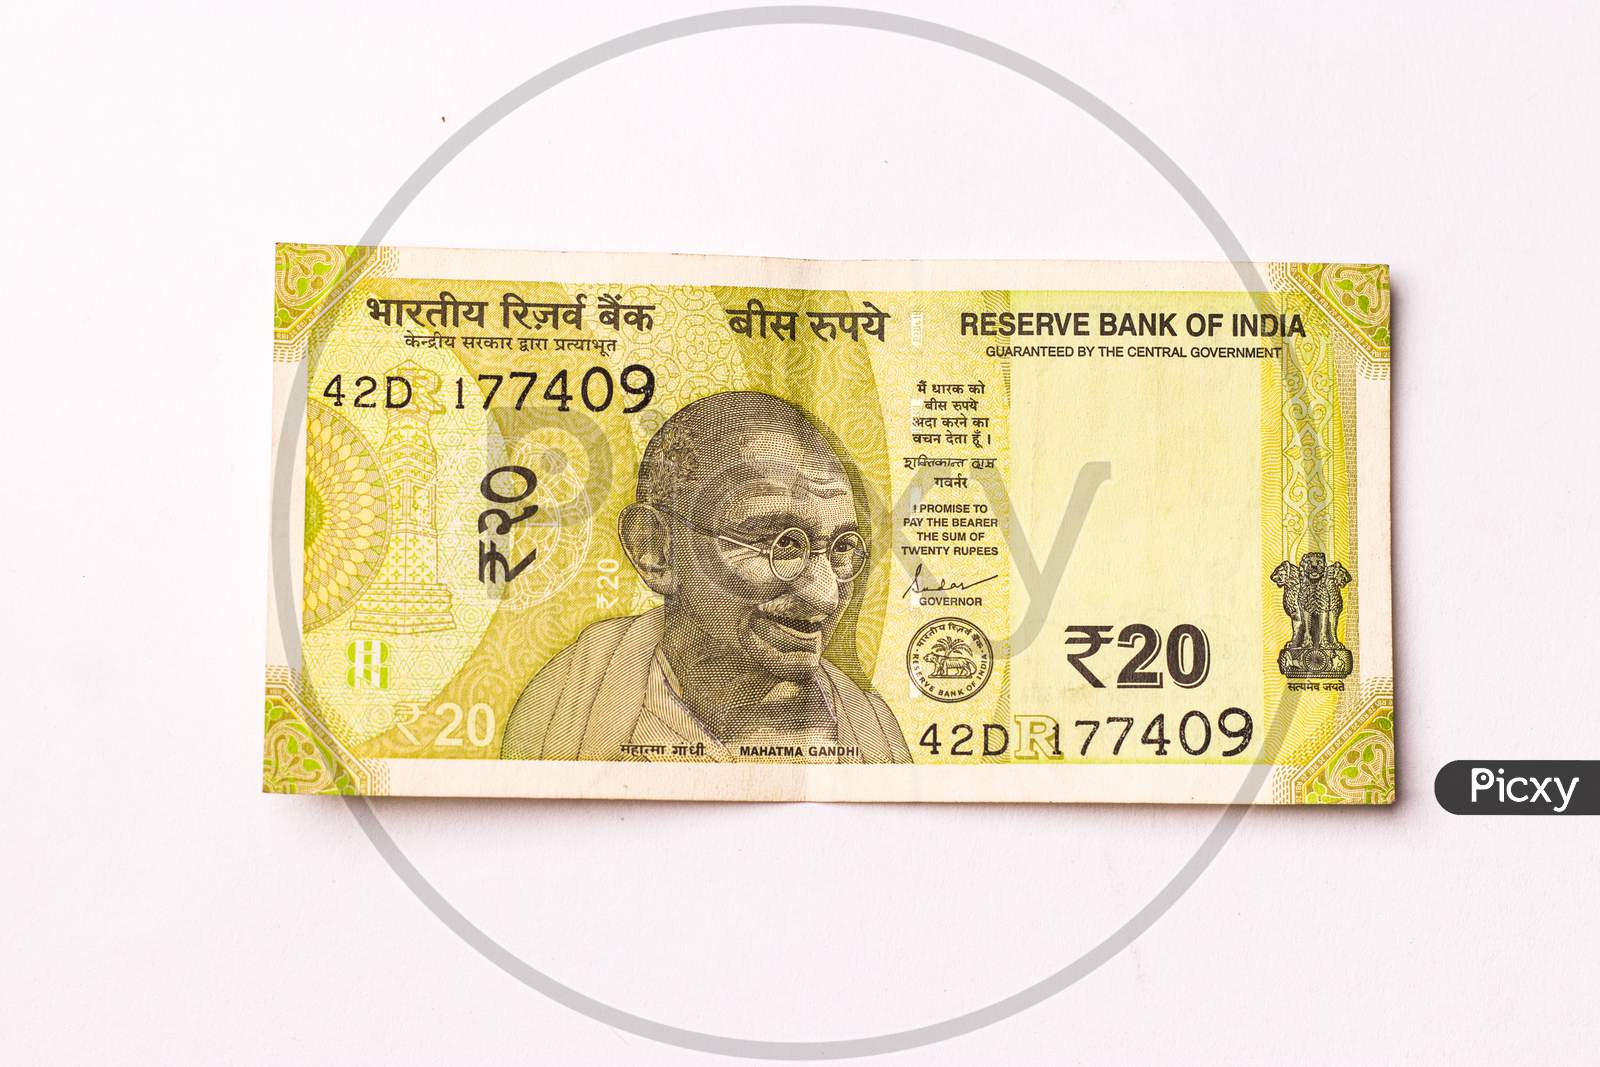 Assam, india - March 30, 2021 : Indian new 20 Rupees note stock image.